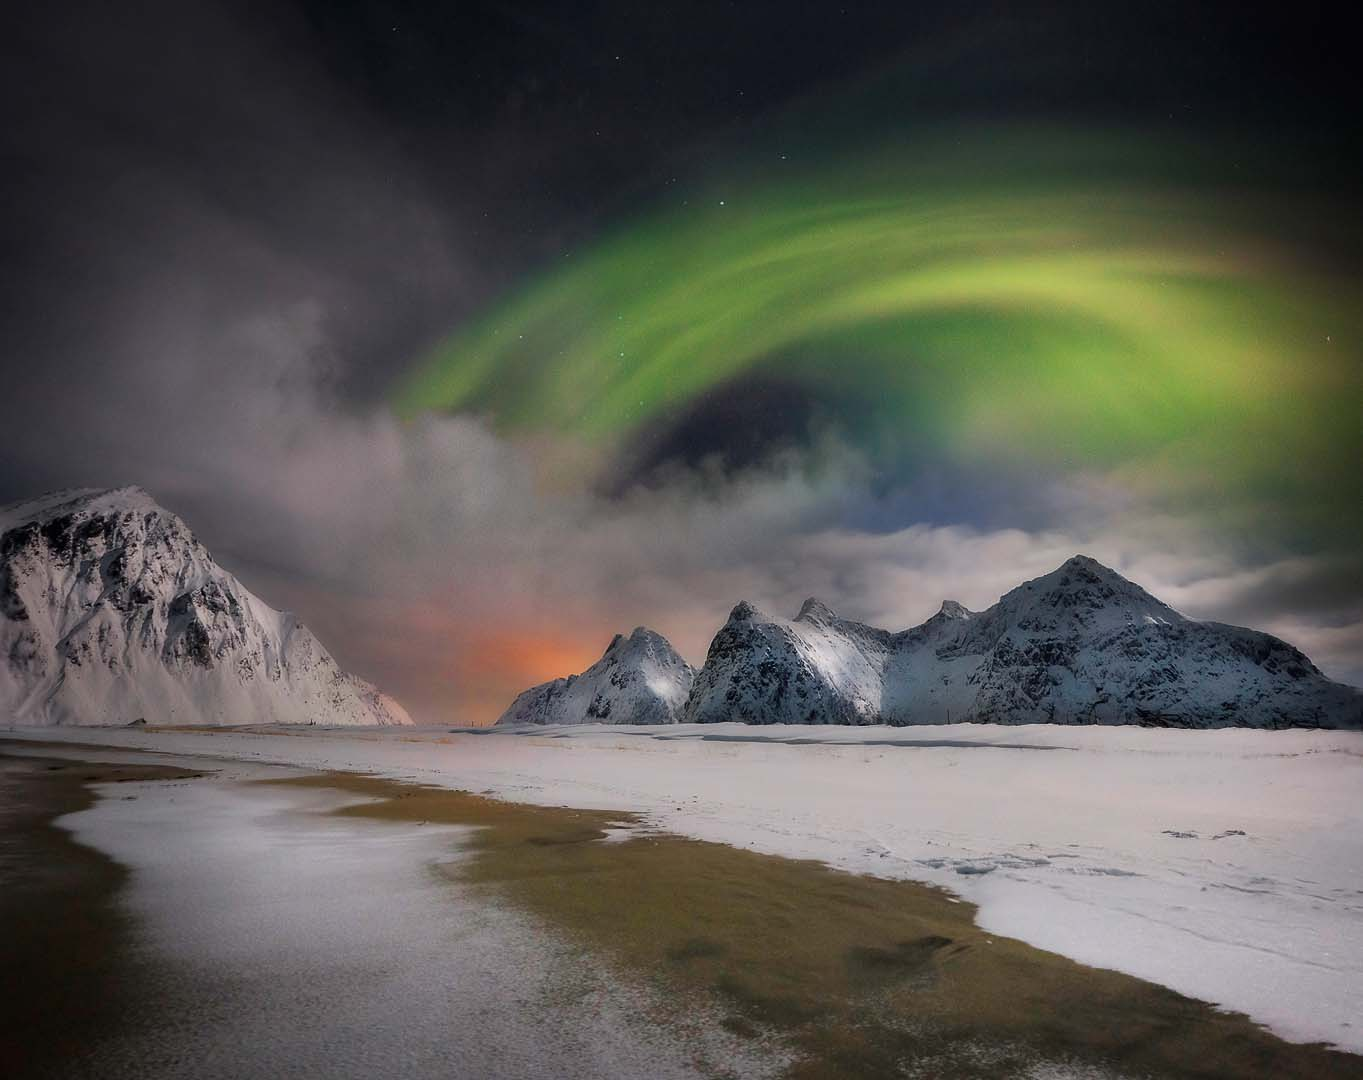 Auroras are collisions between electrically charged particles that come from the sun and enter the earth's atmosphere.